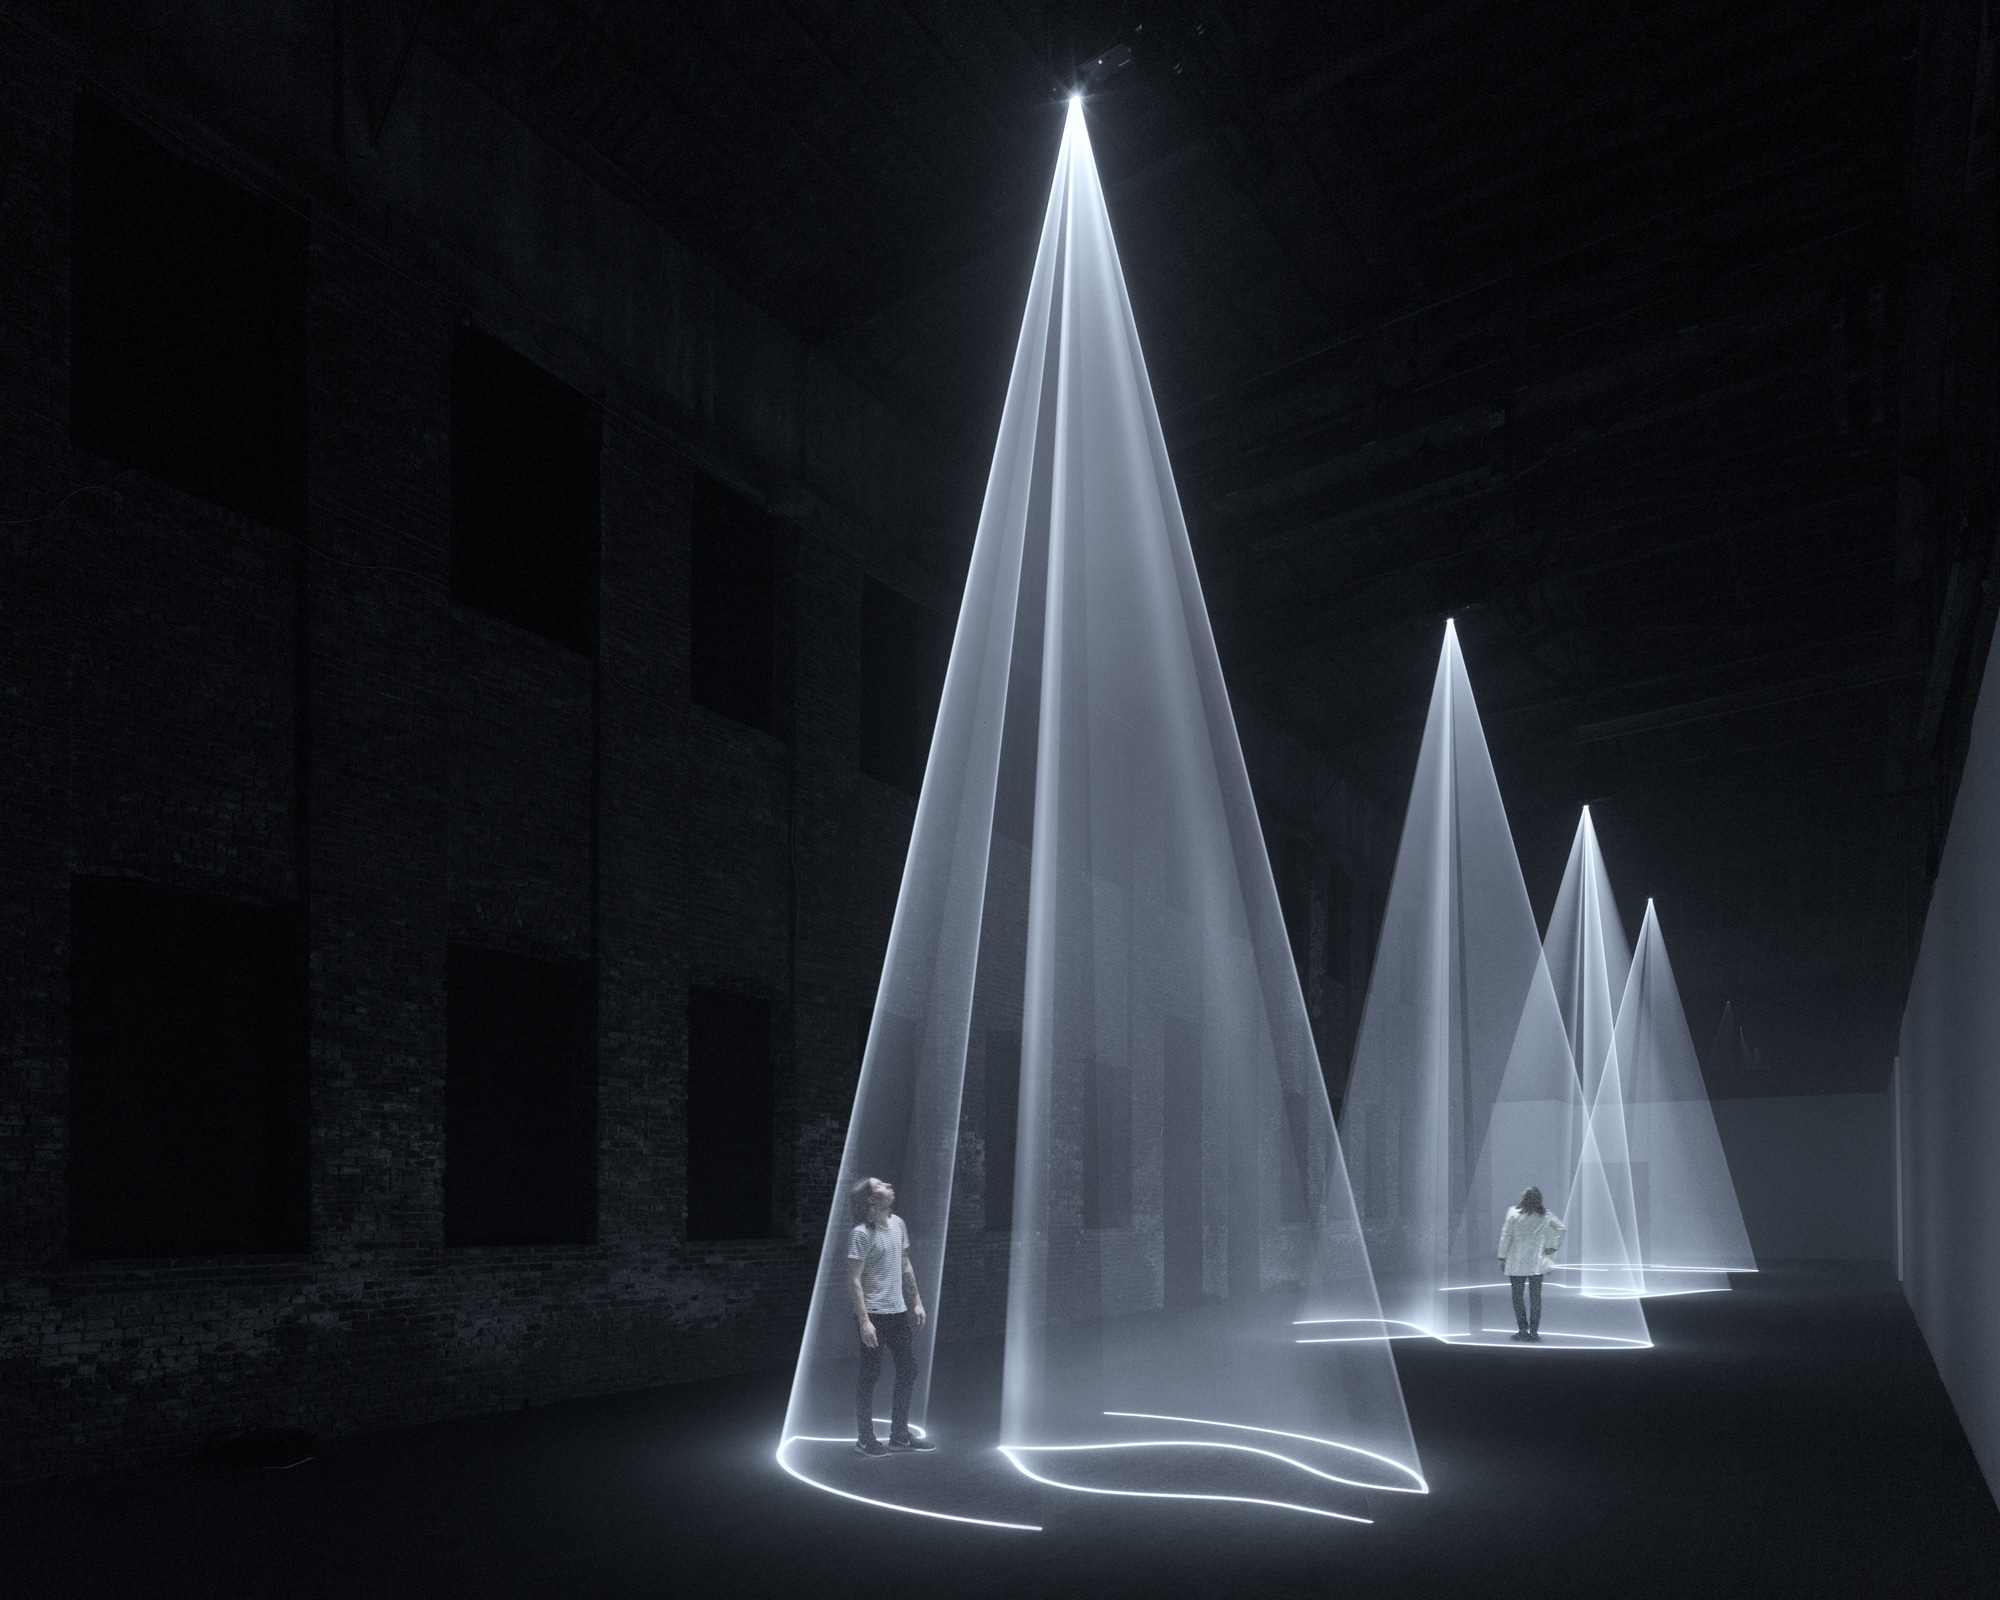 See The Light: Anthony McCall's 'Solid Light Works' - BKLYNER